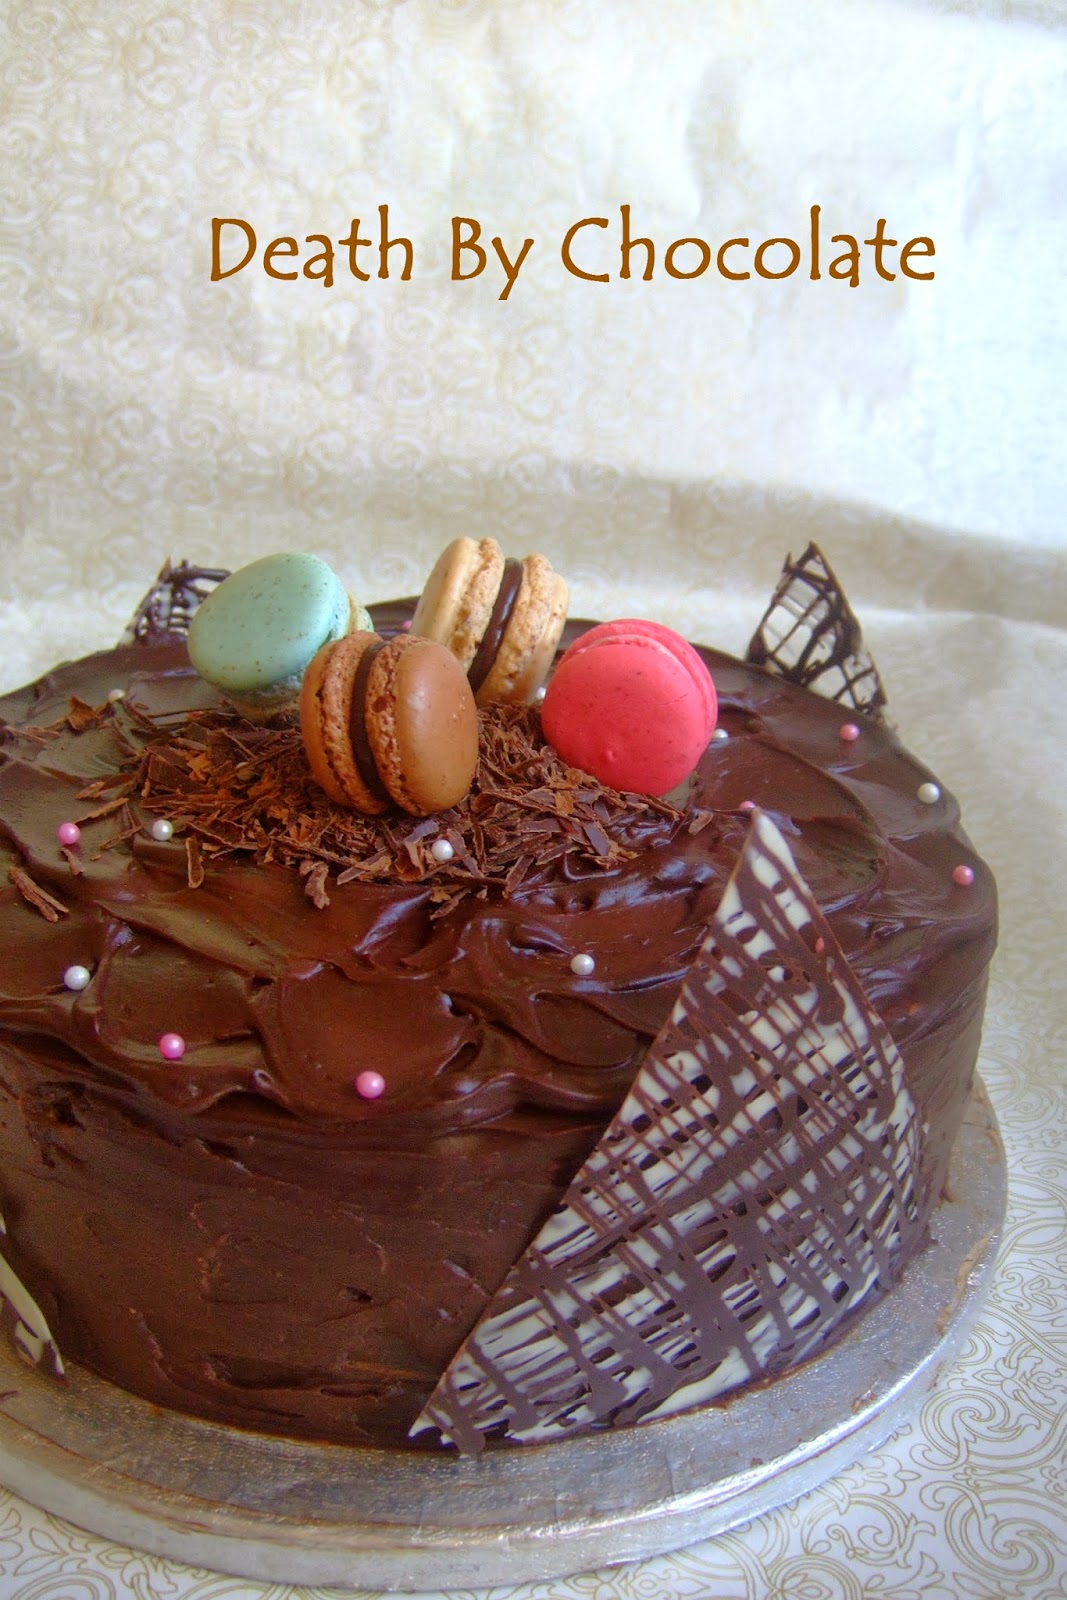 kachuss delights death by chocolate cake it 39 s my 200th. Black Bedroom Furniture Sets. Home Design Ideas